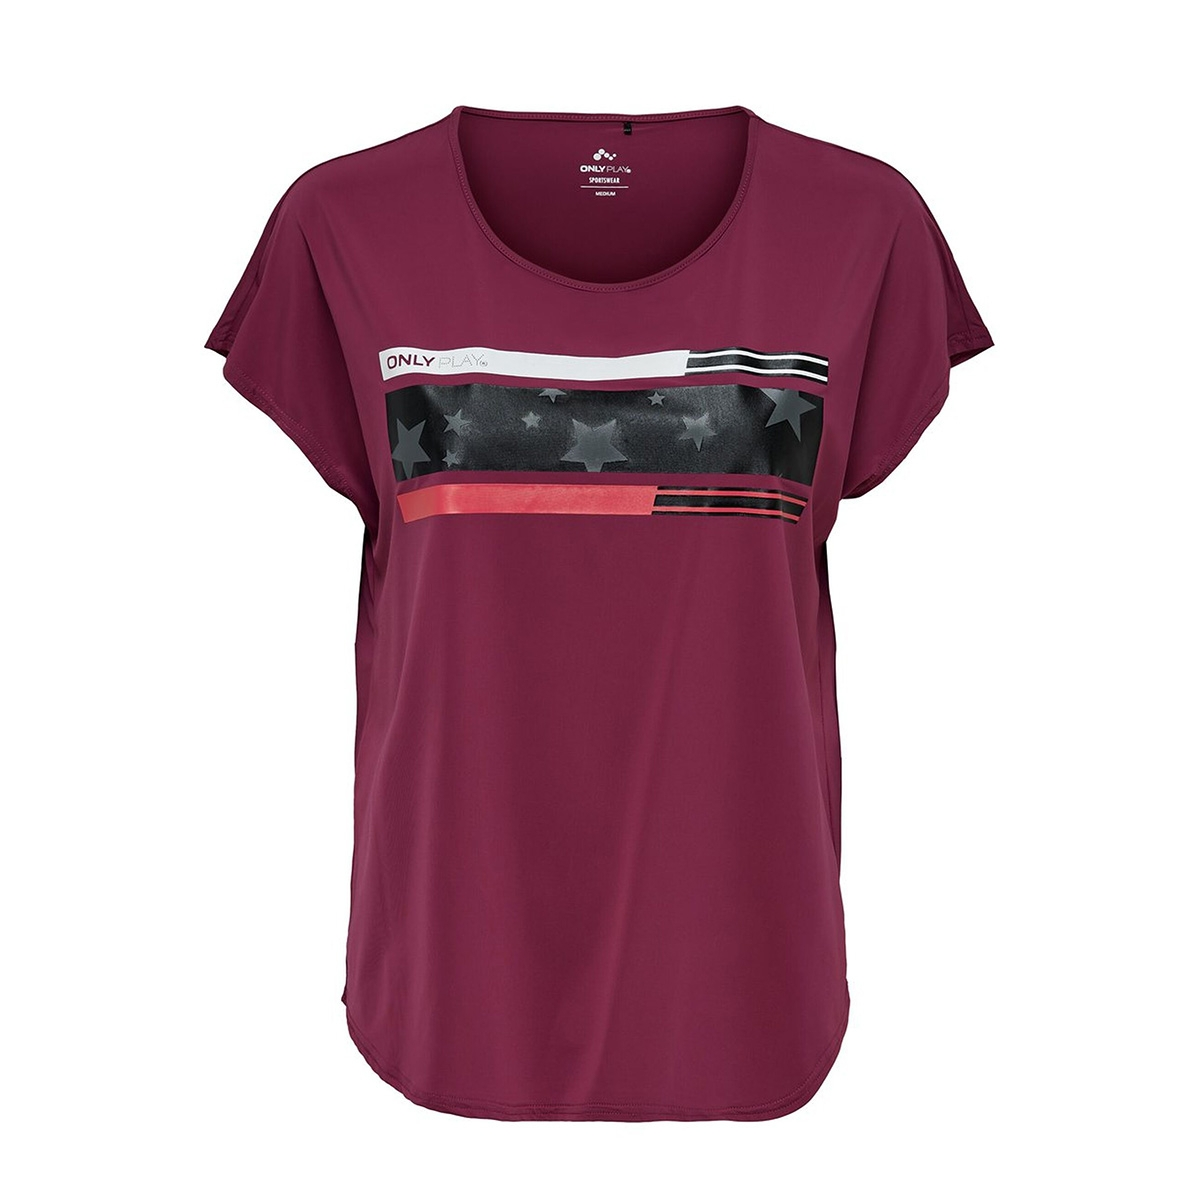 onpaudrey loose ss training tee 15175795 only play sport shirt beet red